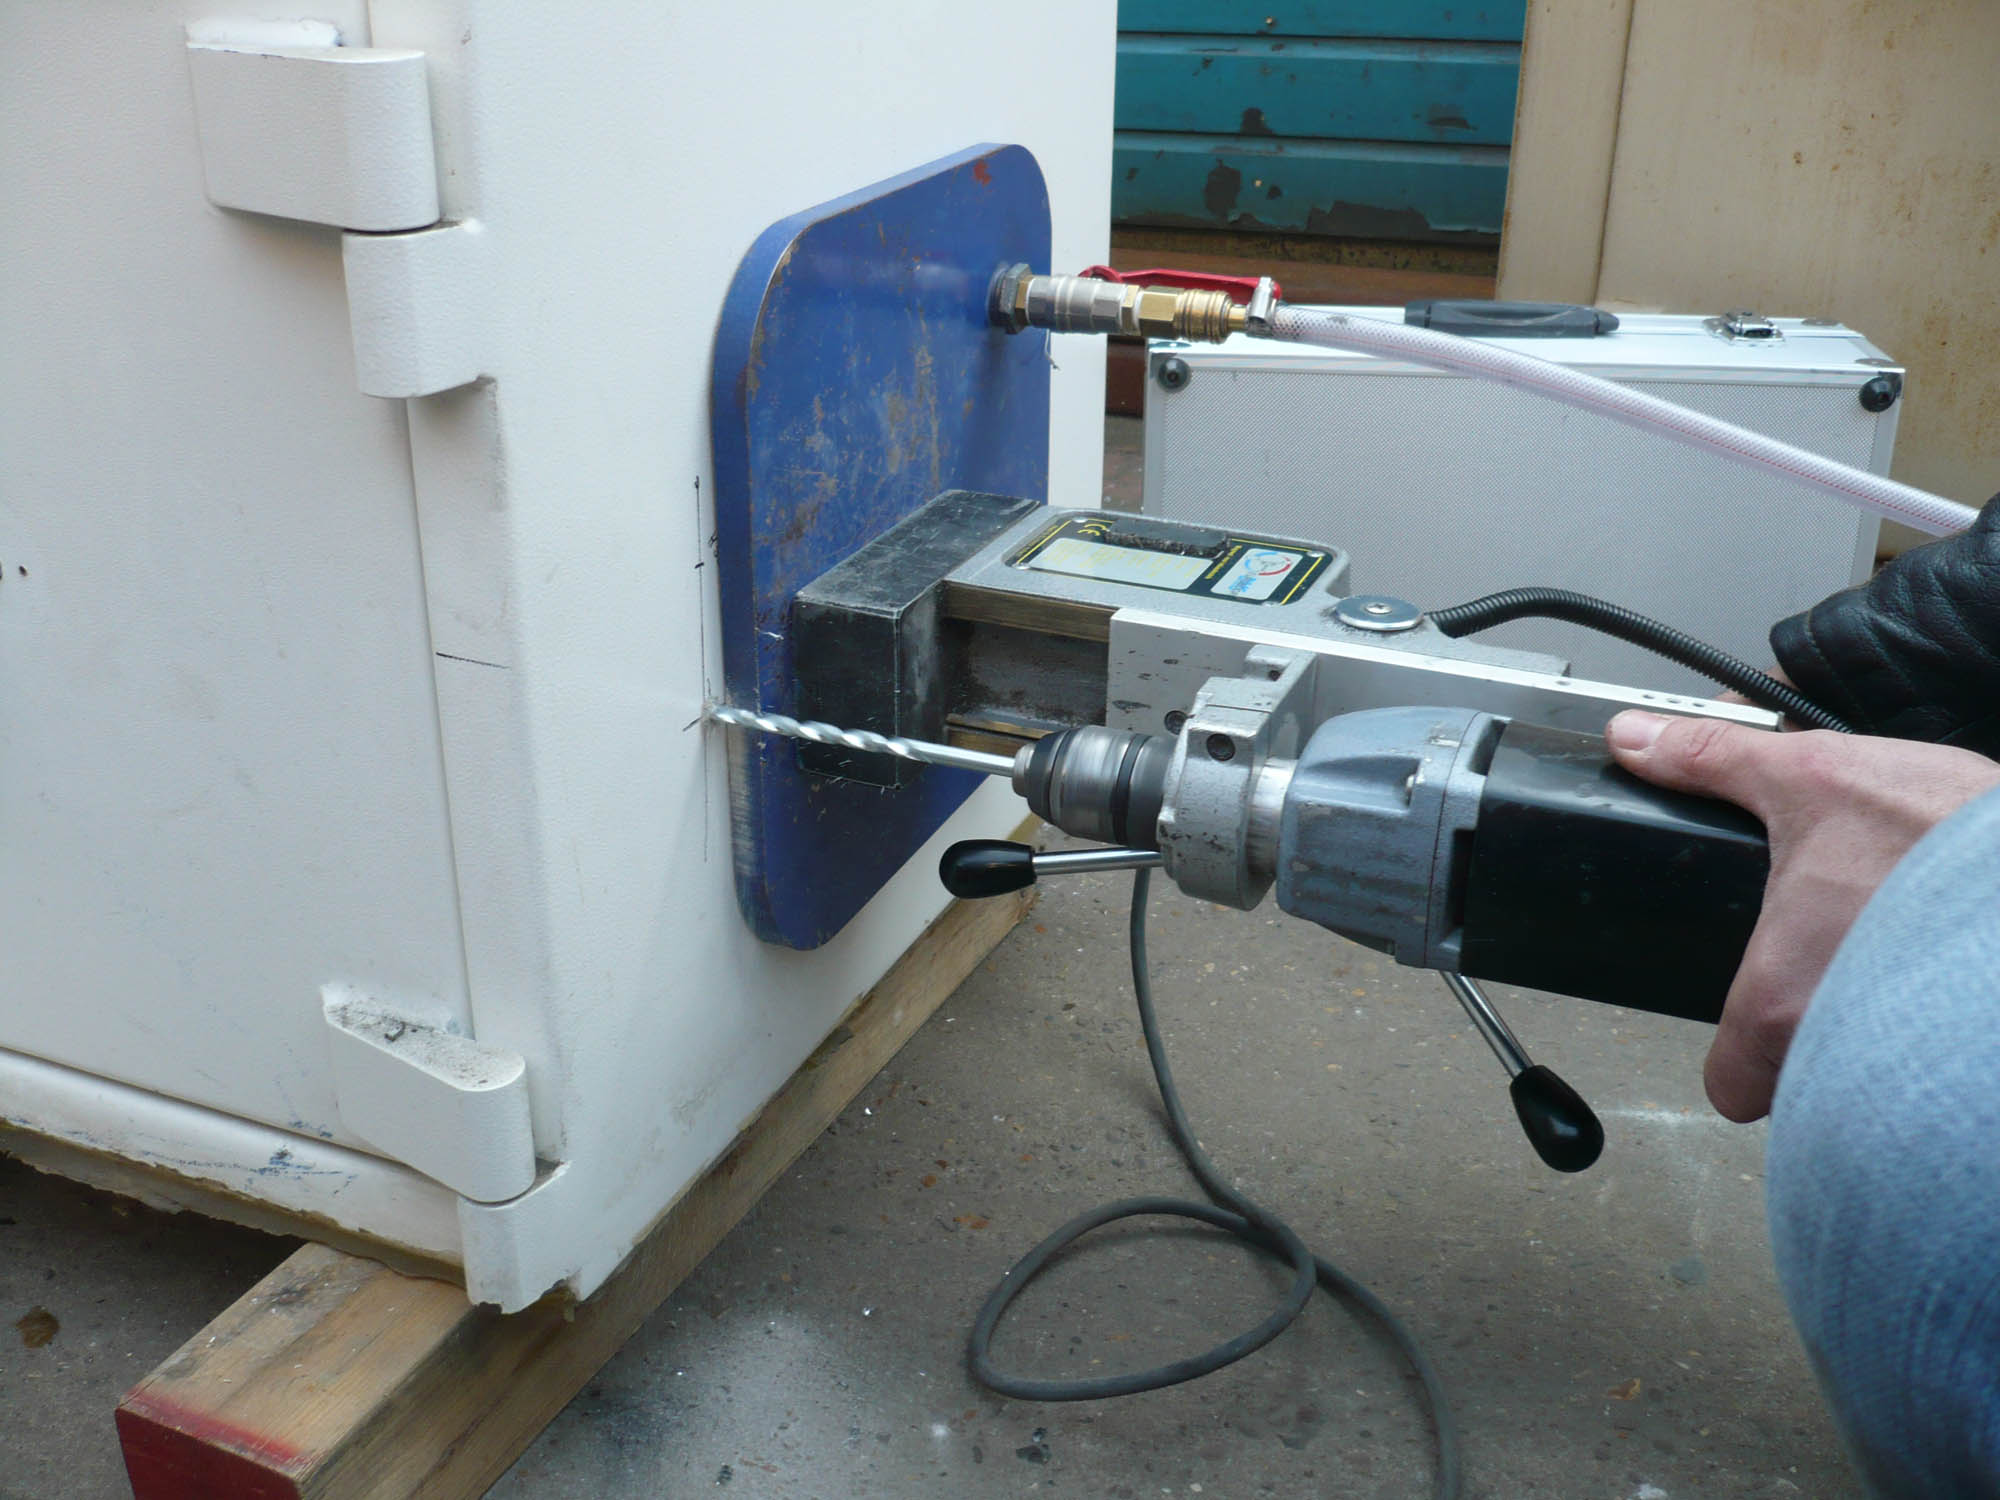 How to crack a safe weak point drilling